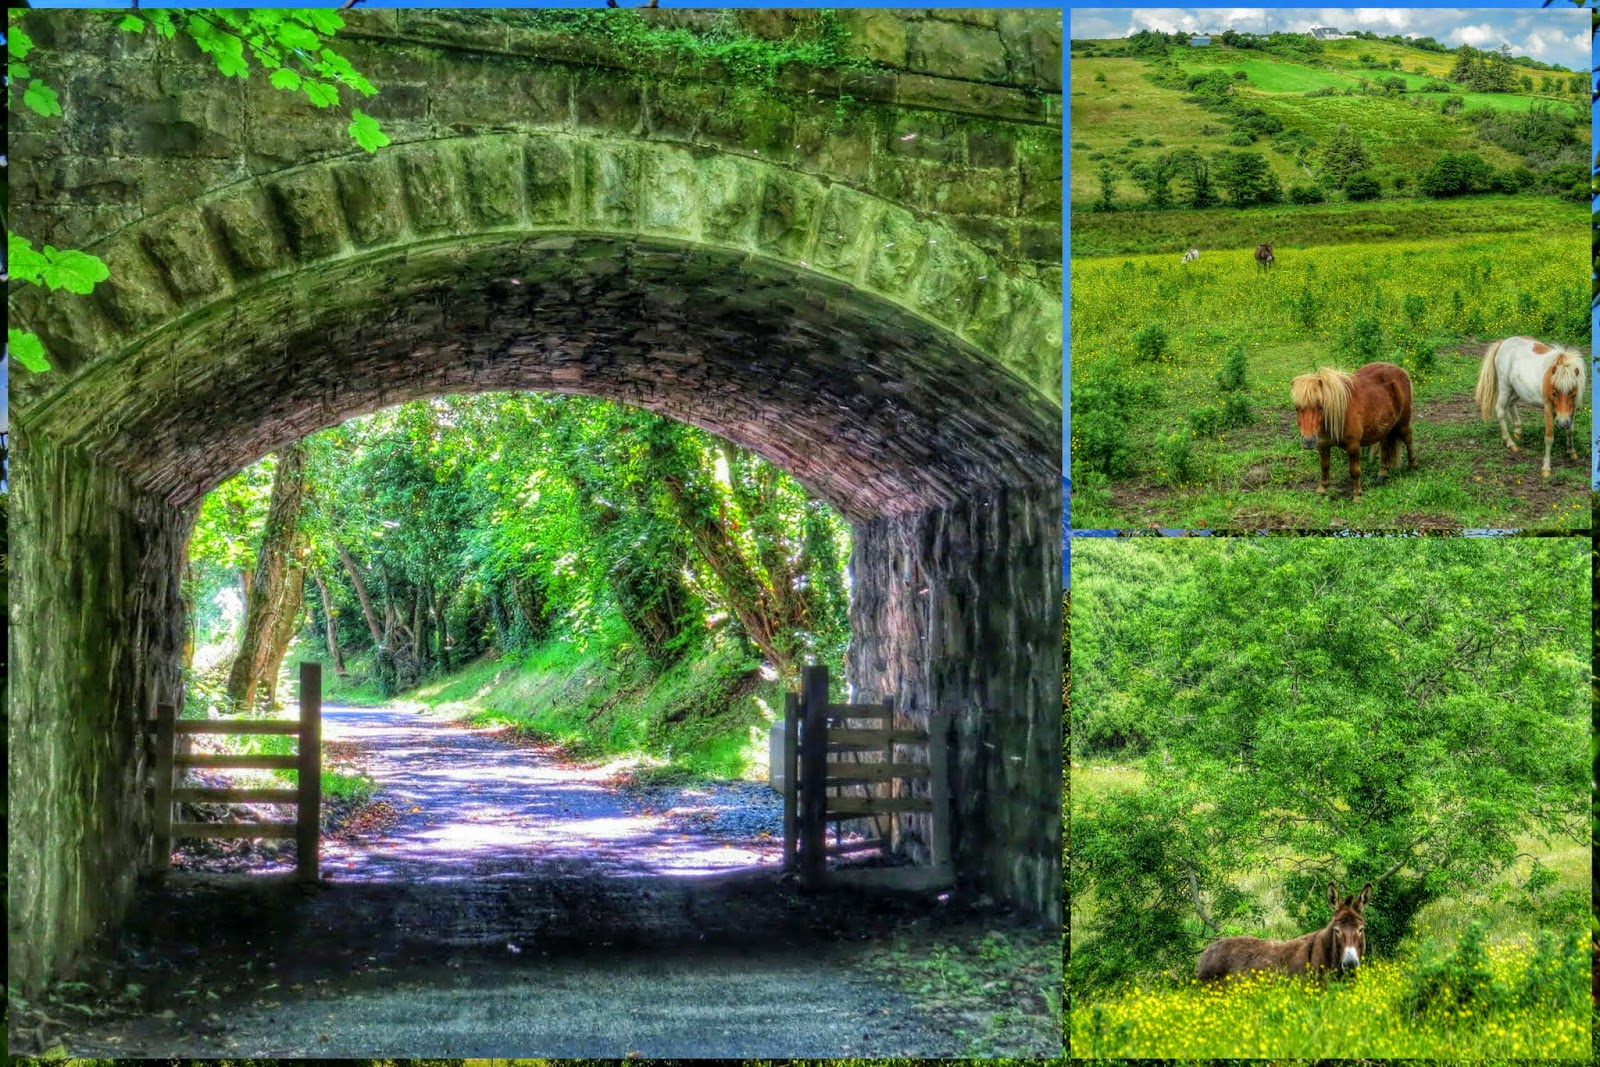 Great Western Greenway near Westport Ireland